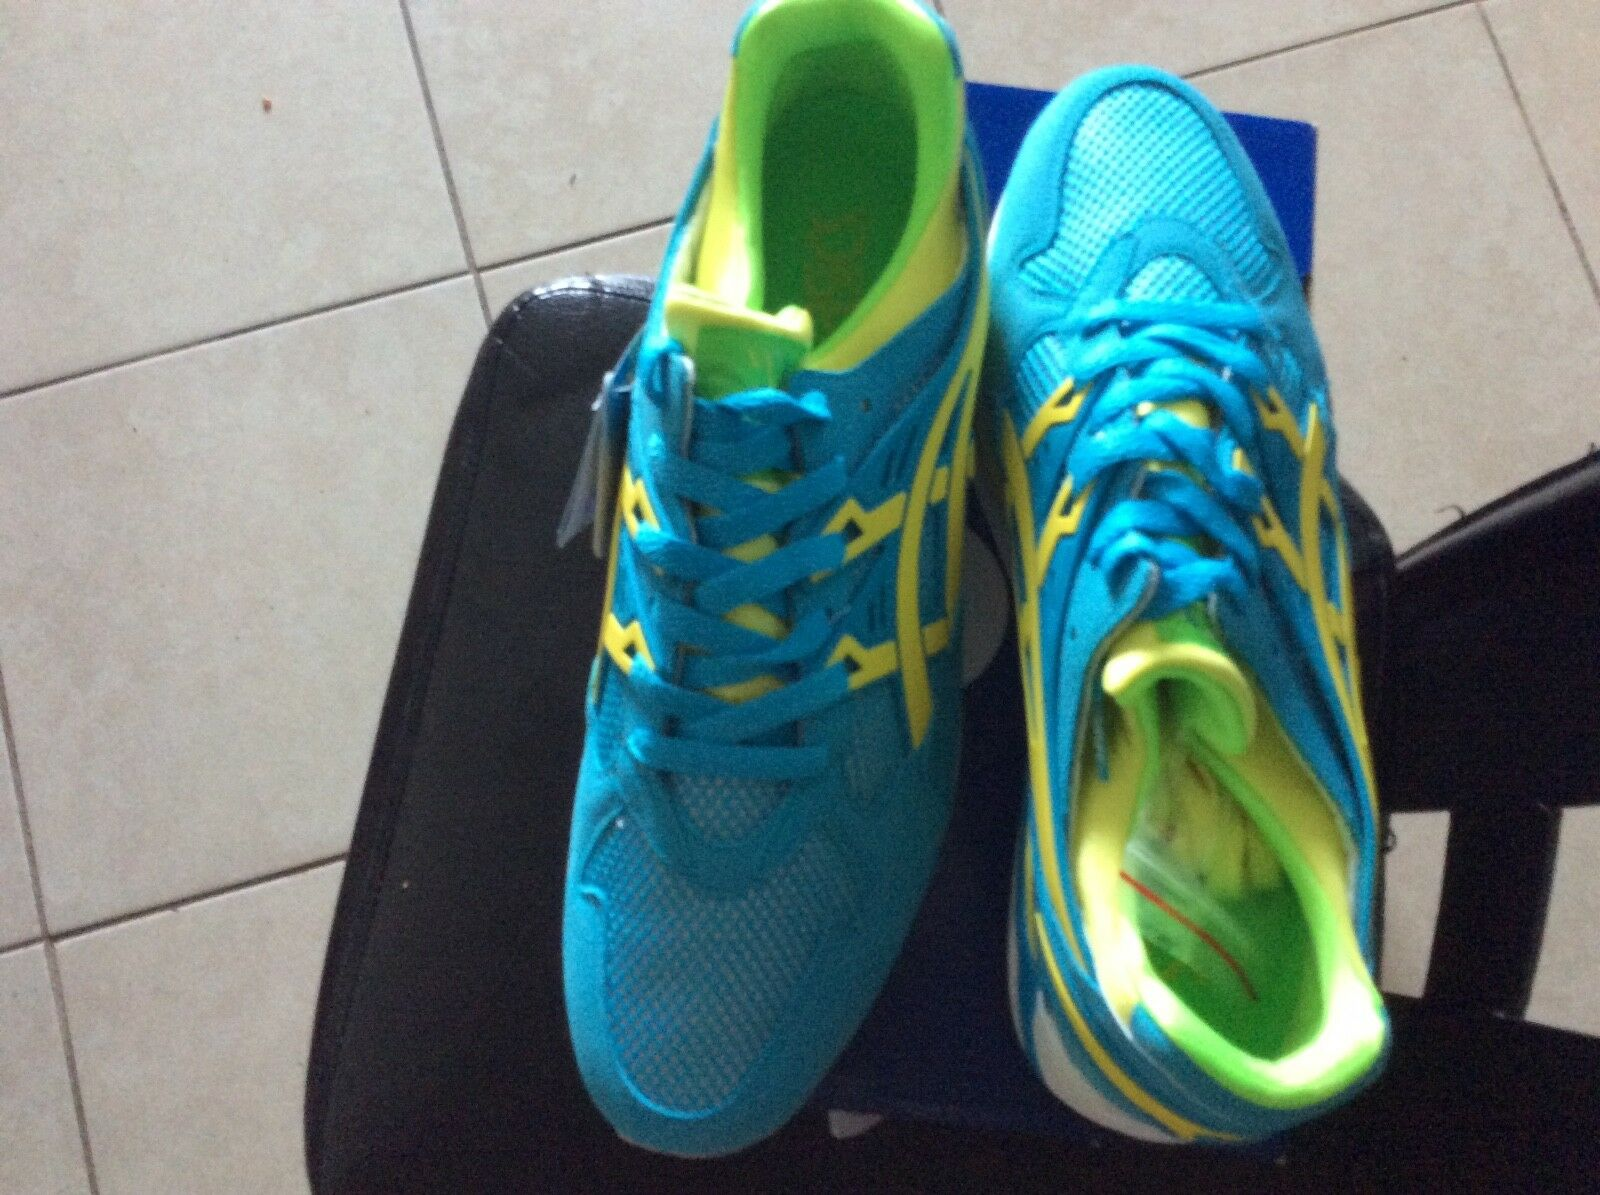 ASICS Gel-Kayan trainer brand new with box and extra laces bluee and yellow